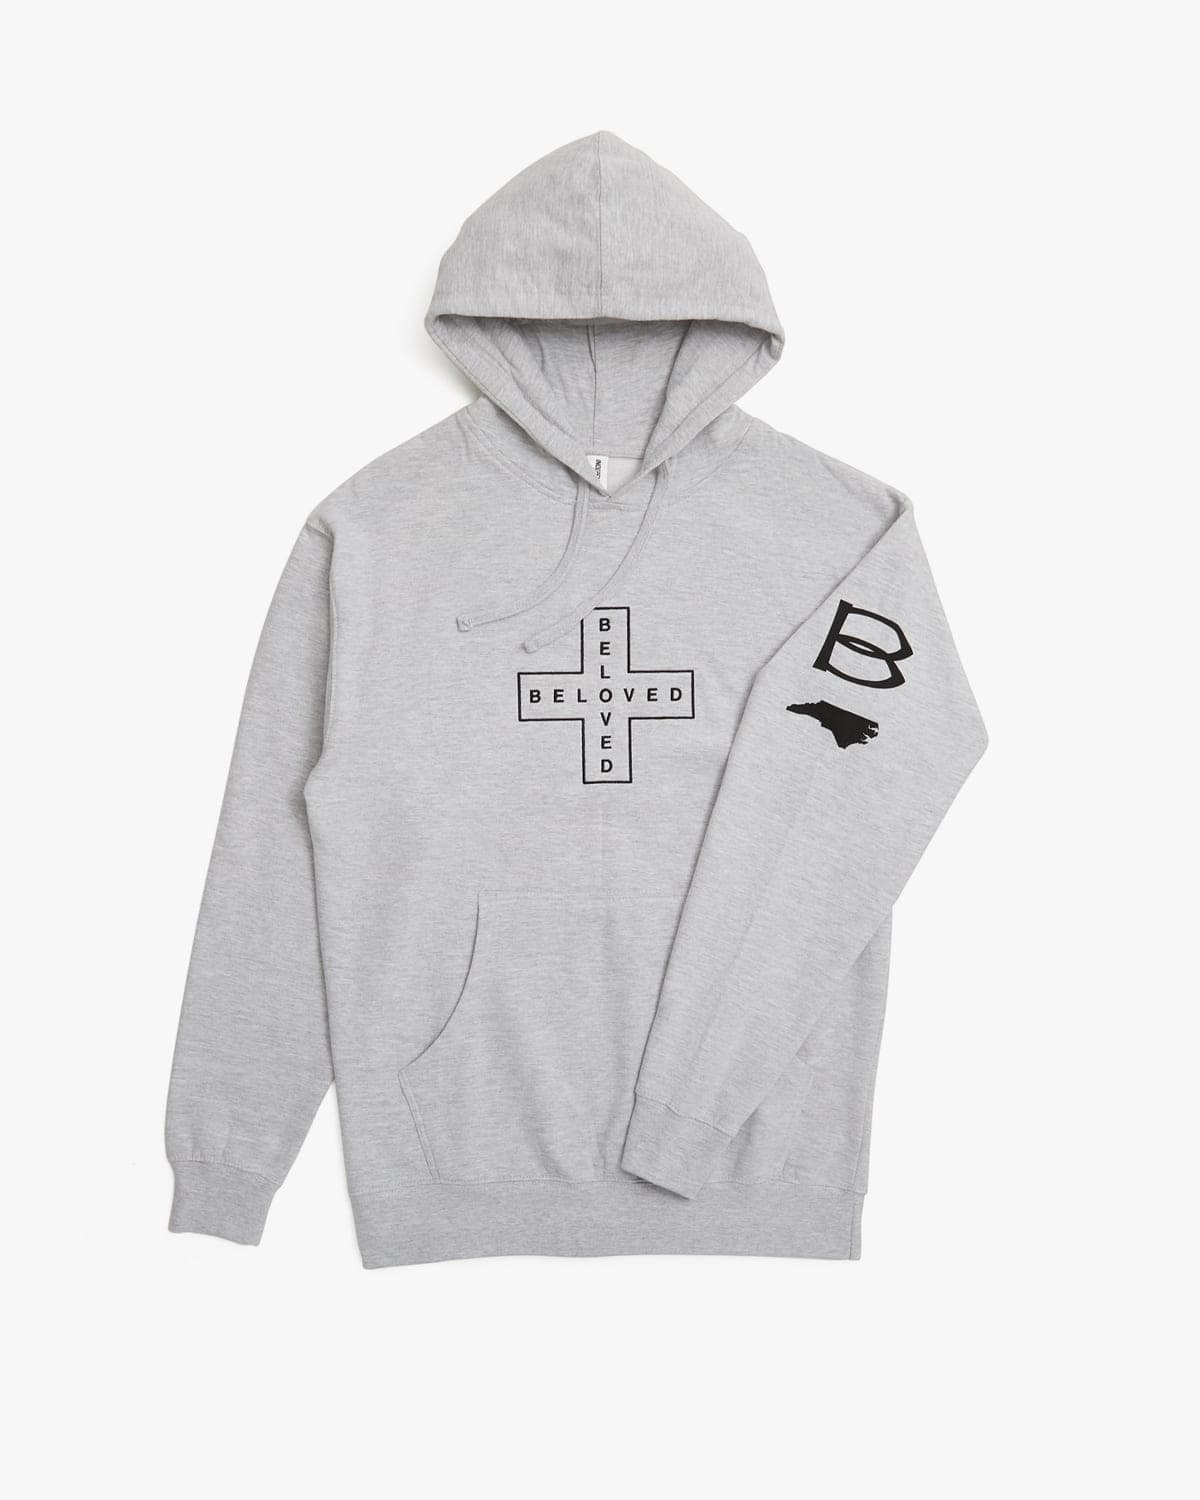 'Cross' Embroidered Pull Over Hoodie - Heather Grey